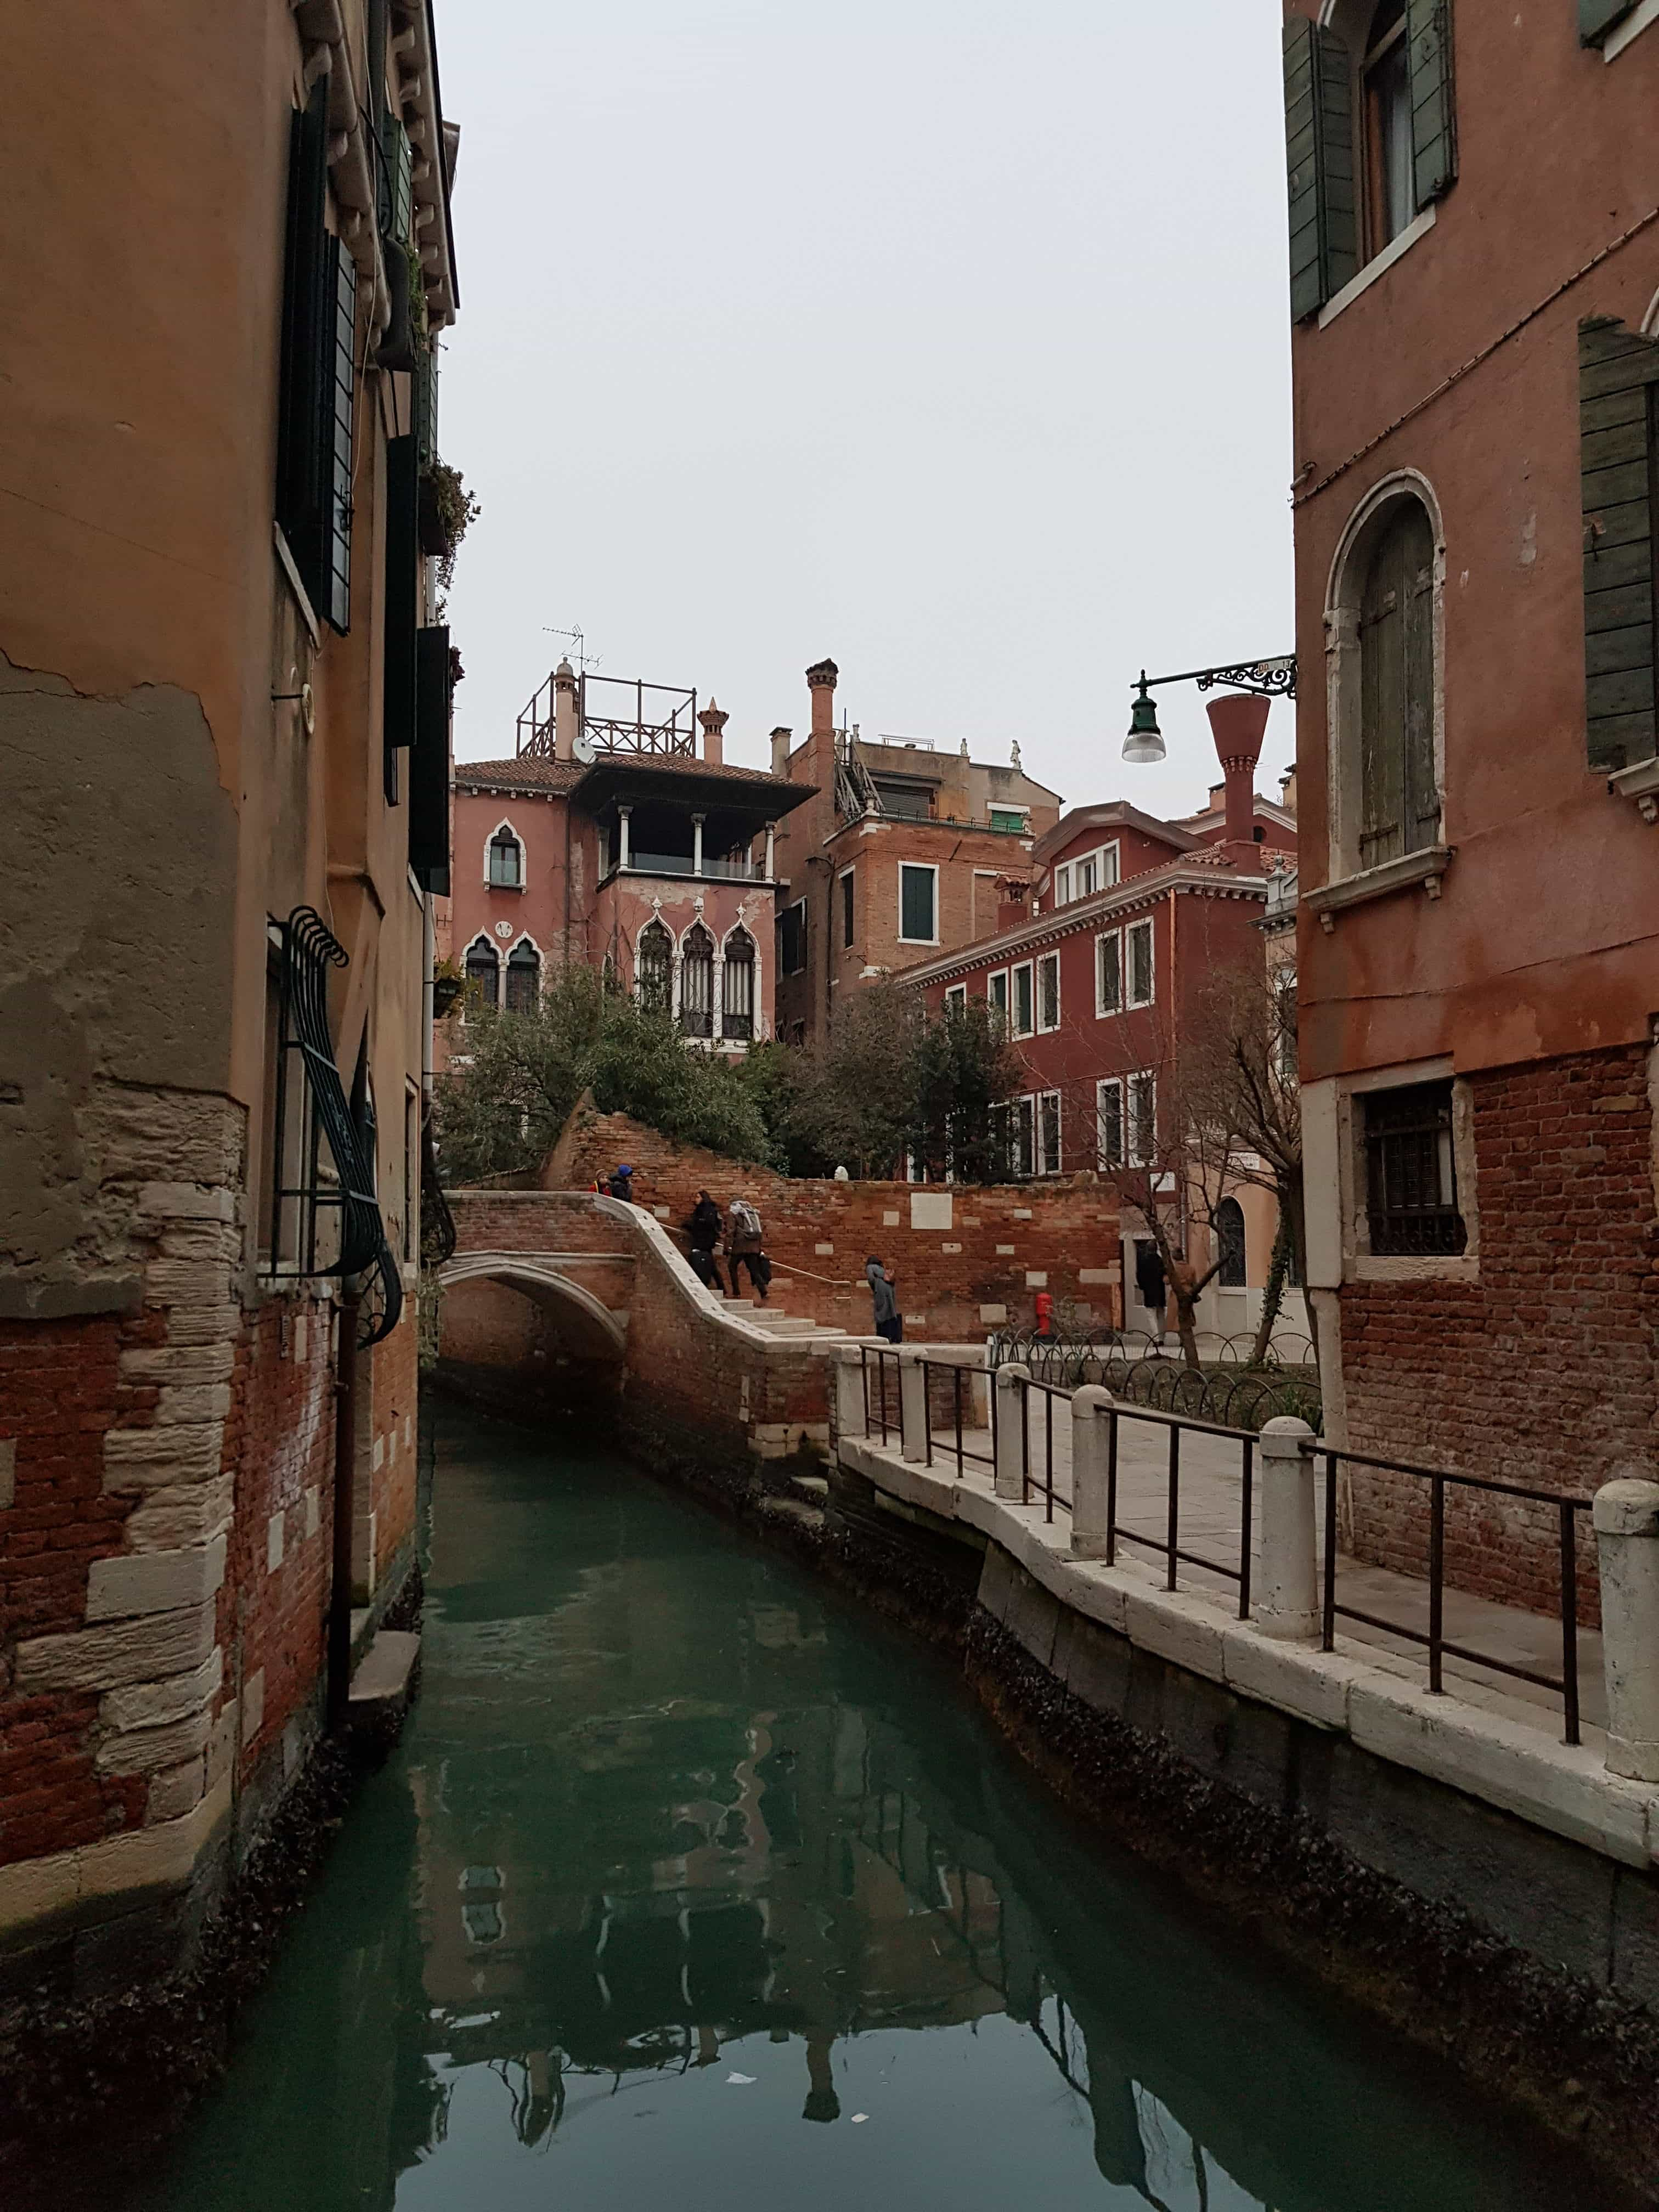 How-many-days-should-you-spend-in-Venice-Italy-3-days-canals